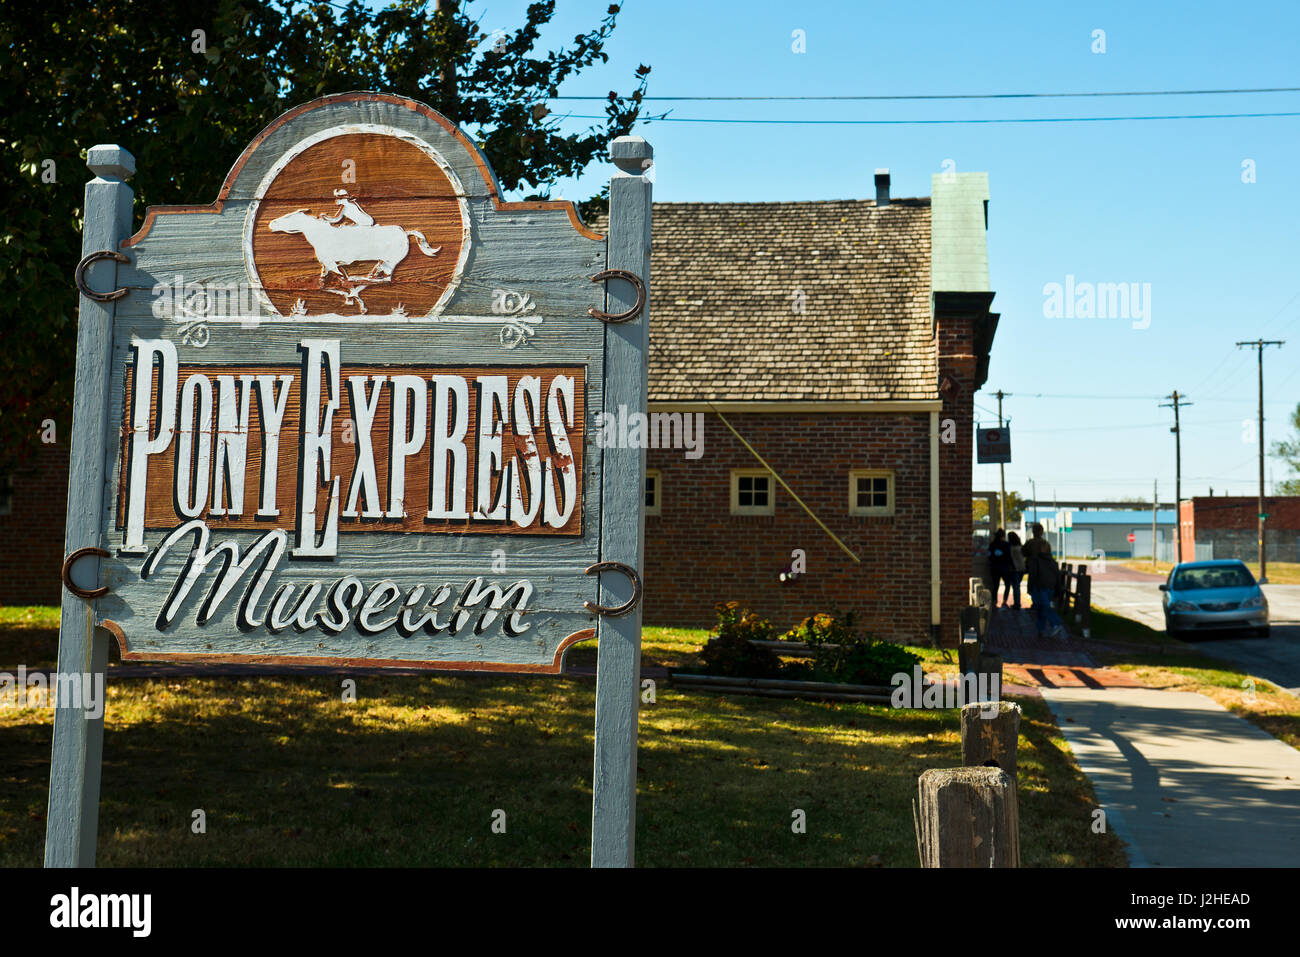 Pony express museum stock photos pony express museum stock images alamy - National express head office number ...